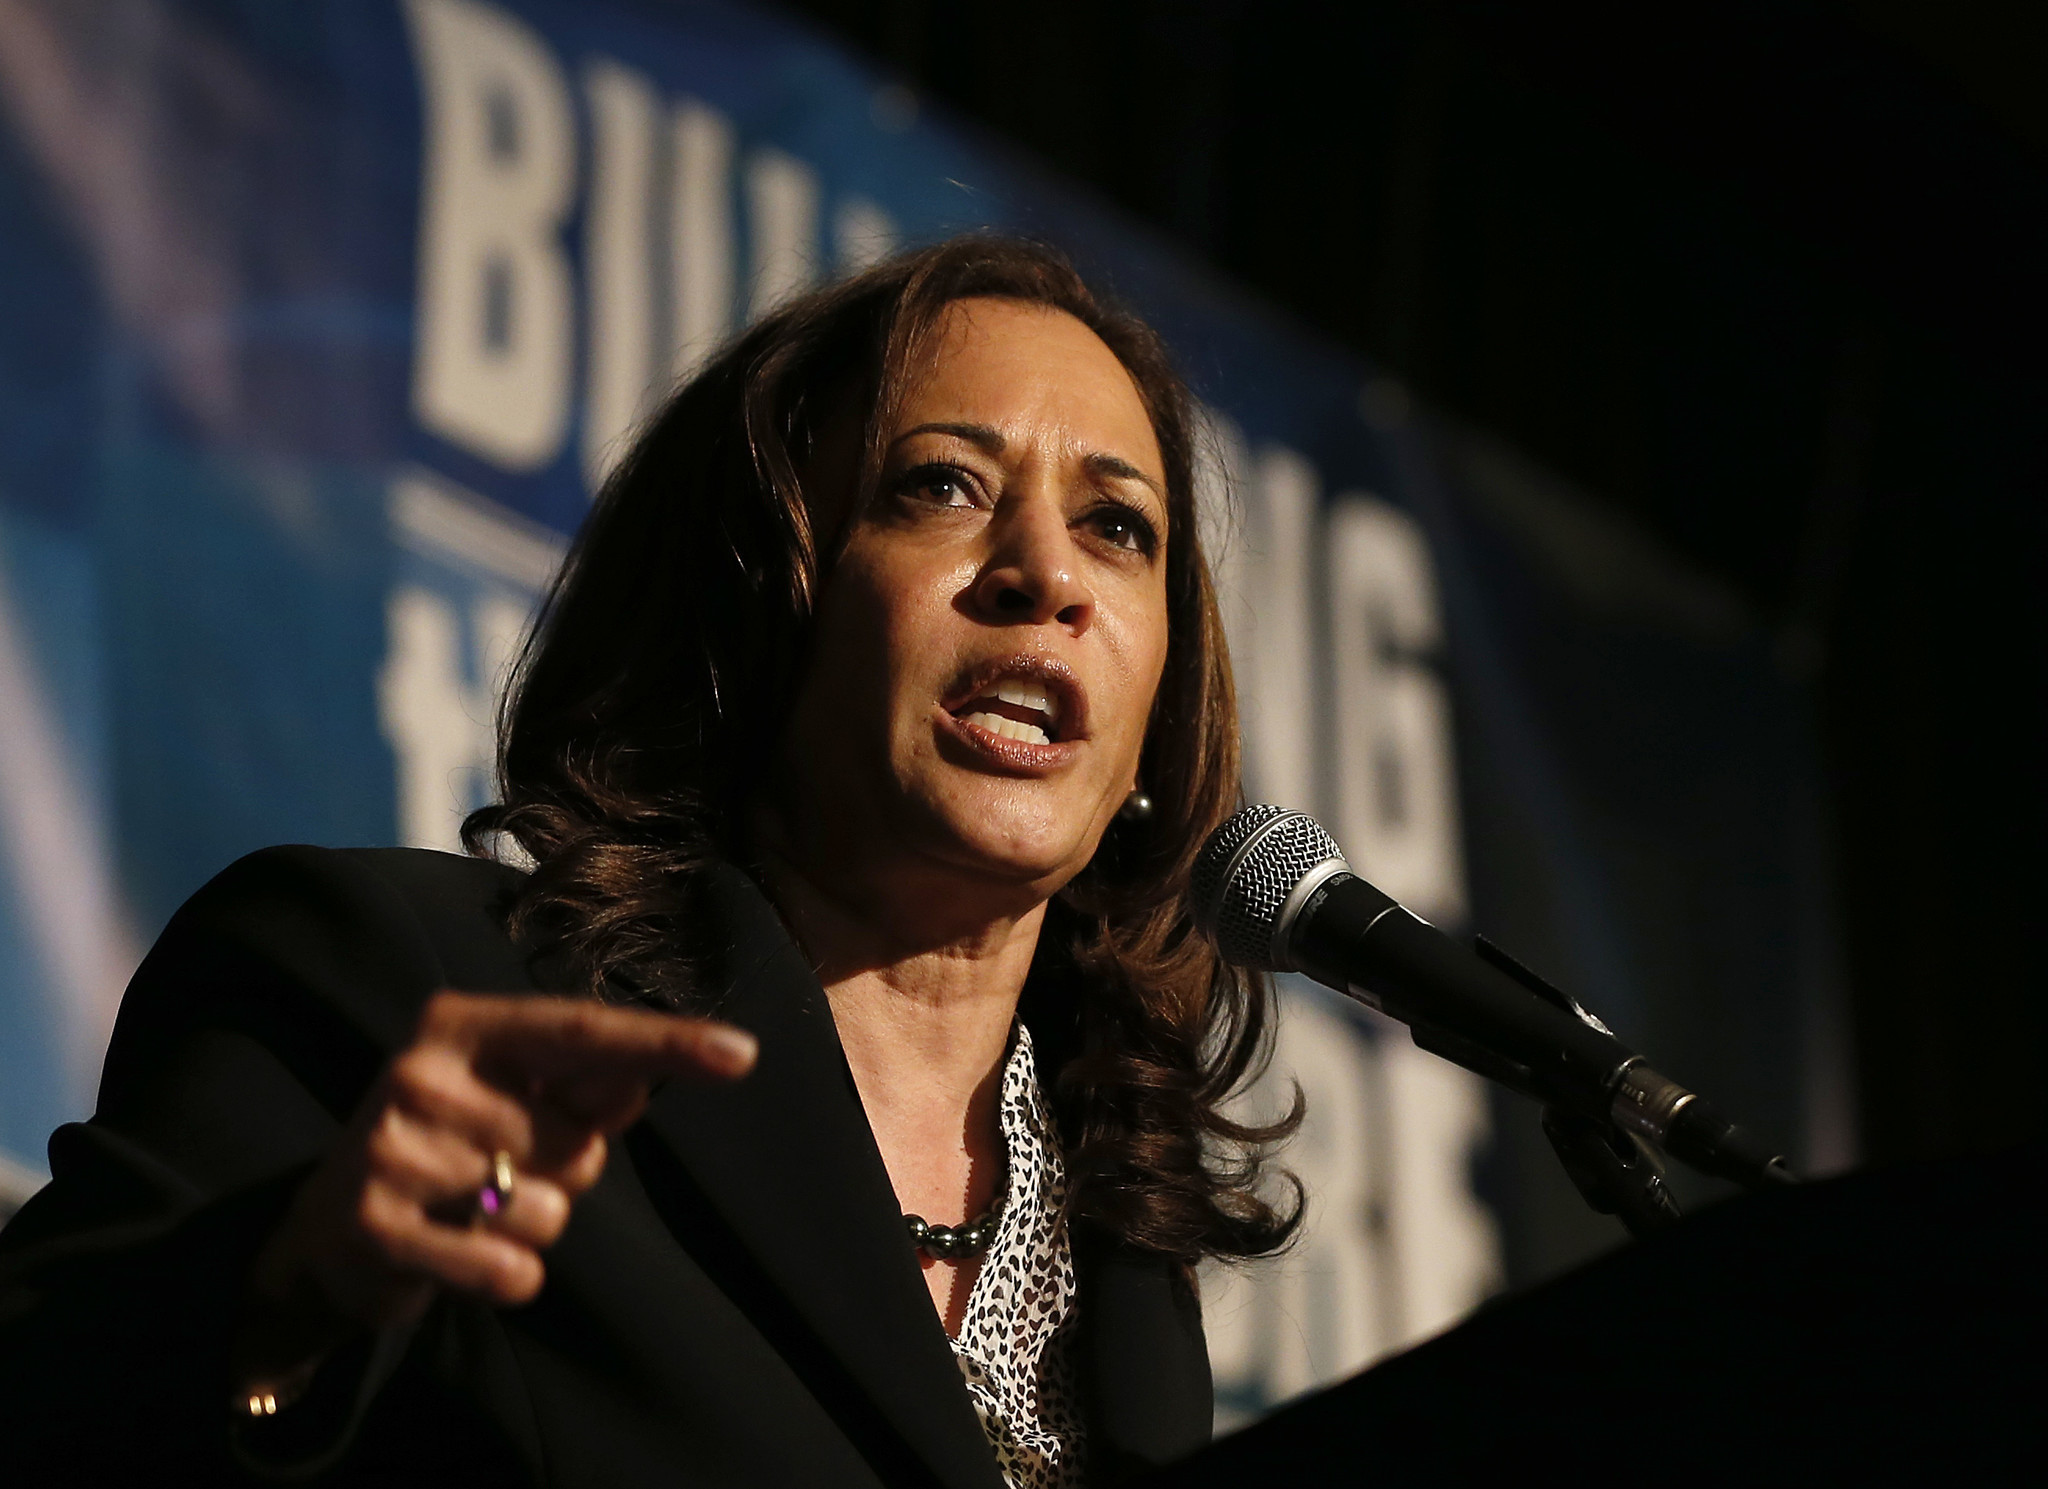 Sen. Kamala Harris joins call for Trump's impeachment during 2020 Democratic town halls